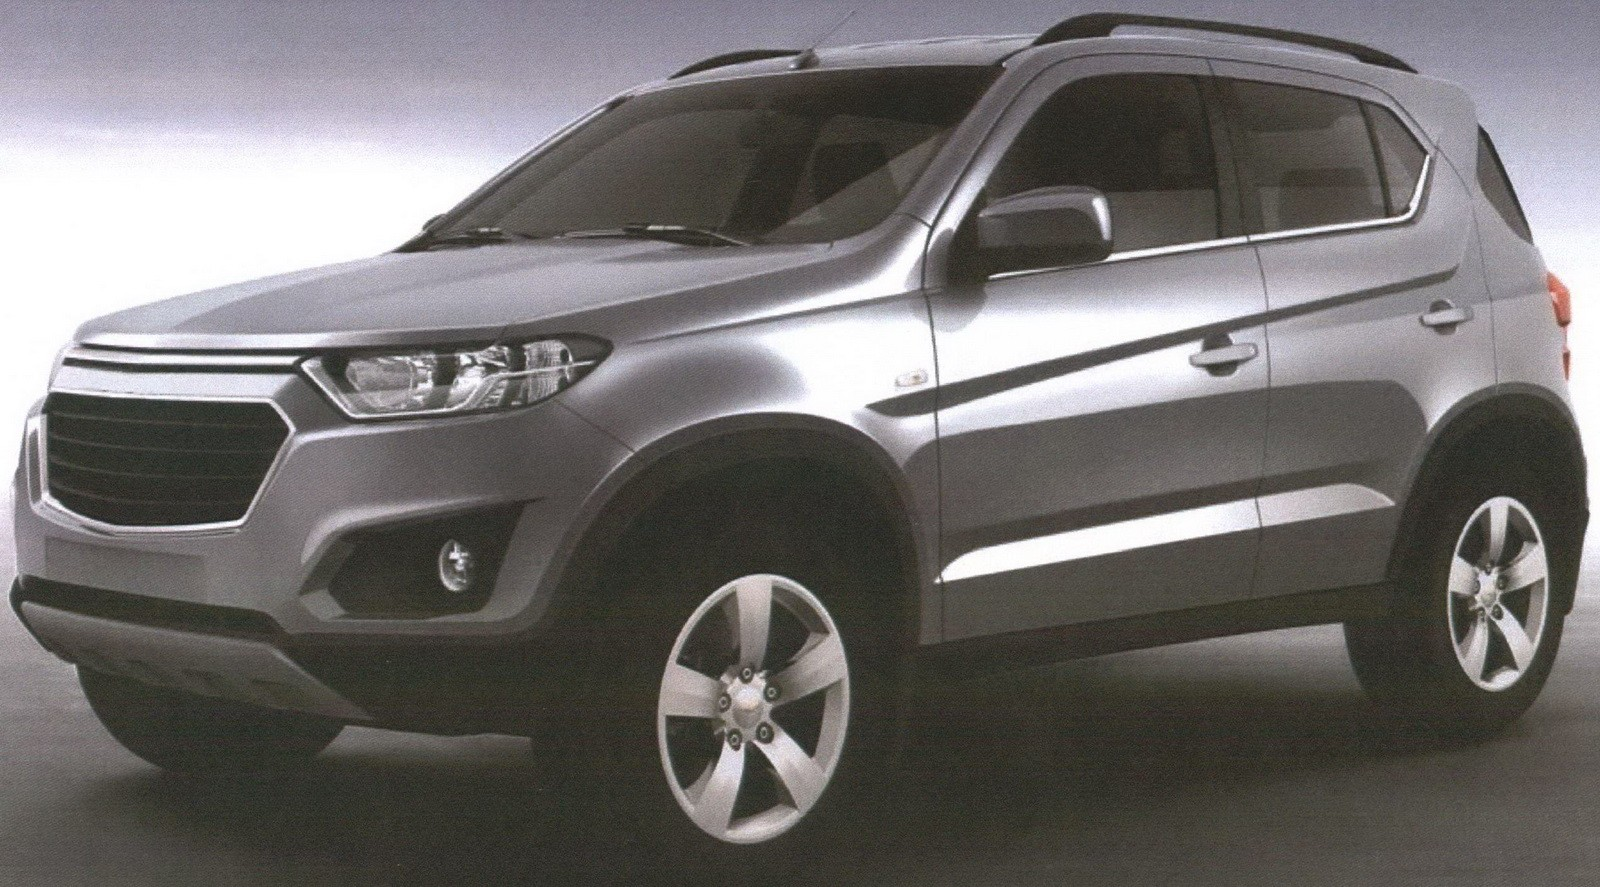 2016 Chevrolet Niva Leaked Patent Pictures Reveal